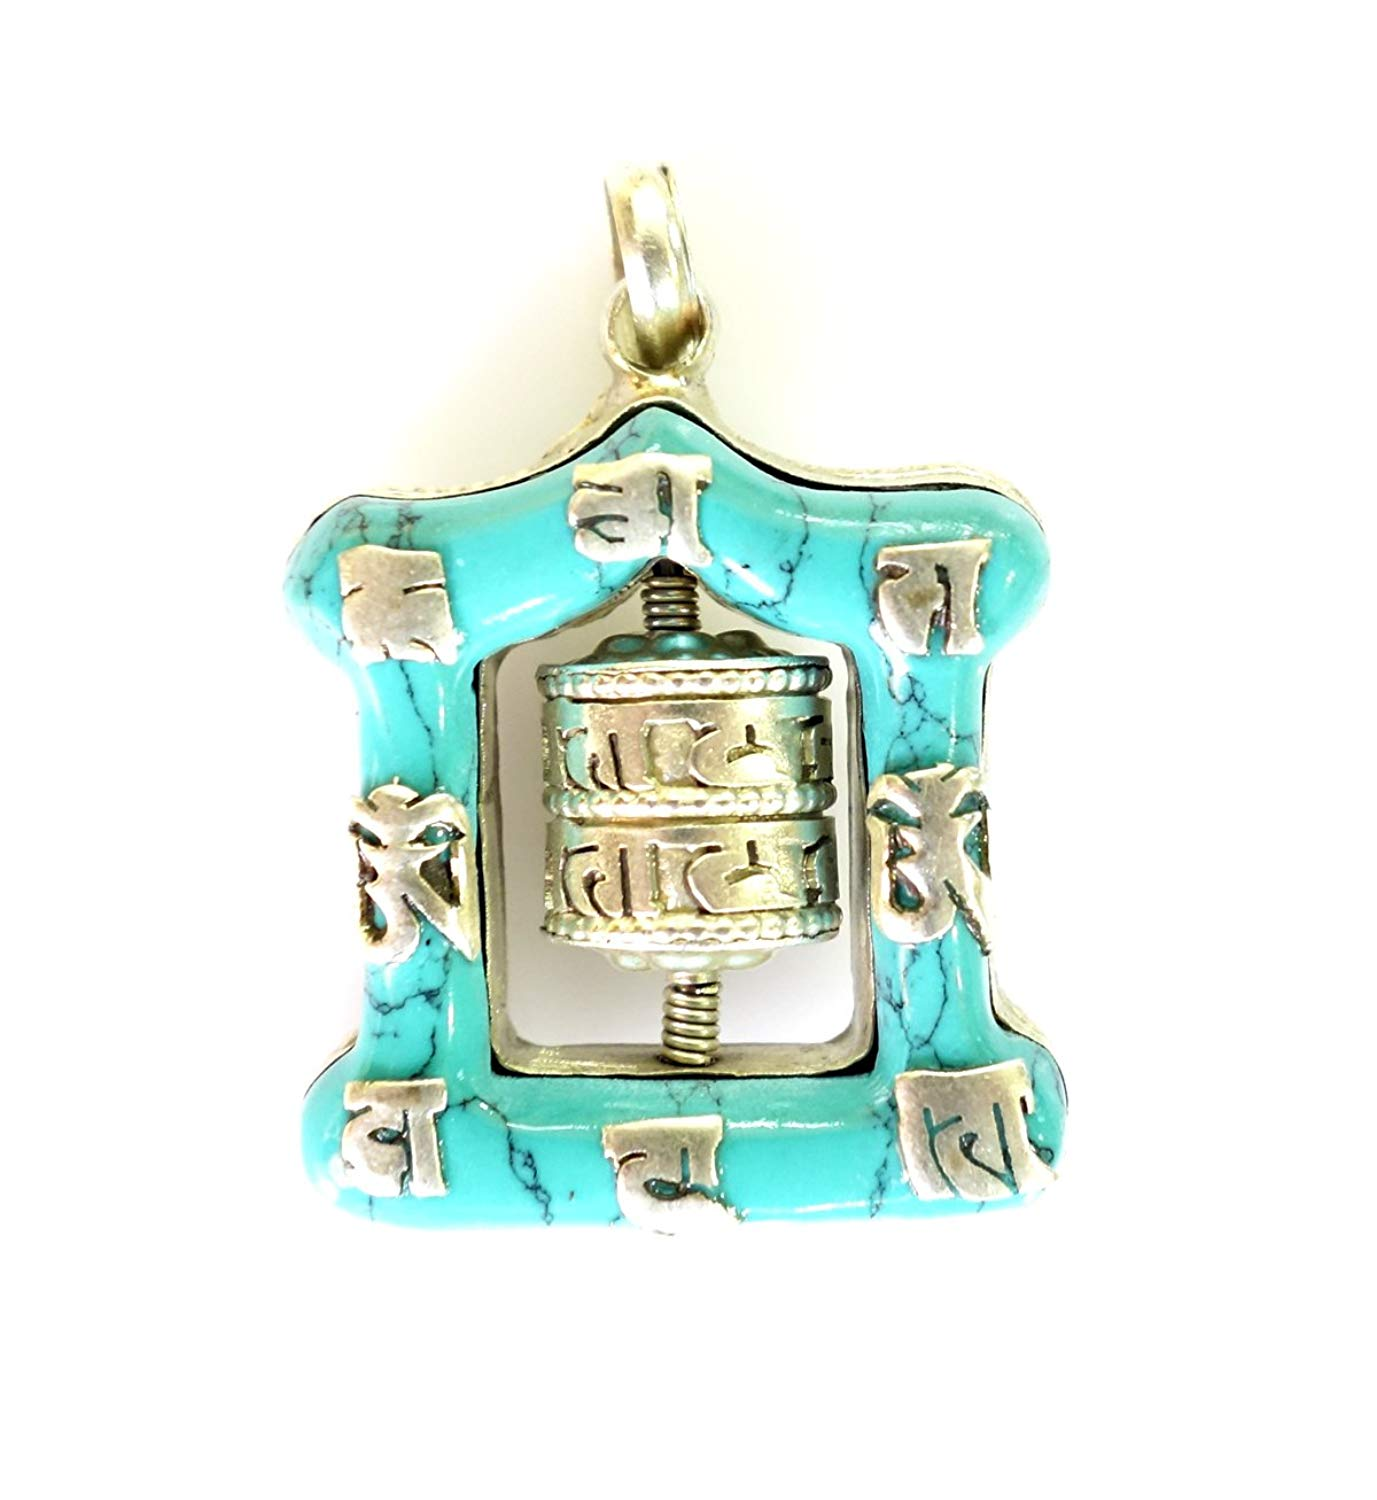 BUDDHIST BOHEMIAN AUTHENTIC TURQUOISE GEMSTONE HEALING PENDANT WITH MANTRAS HAND CRAFTED TRIBAL GYPSY PENDANT BY TIBETAN SILVER